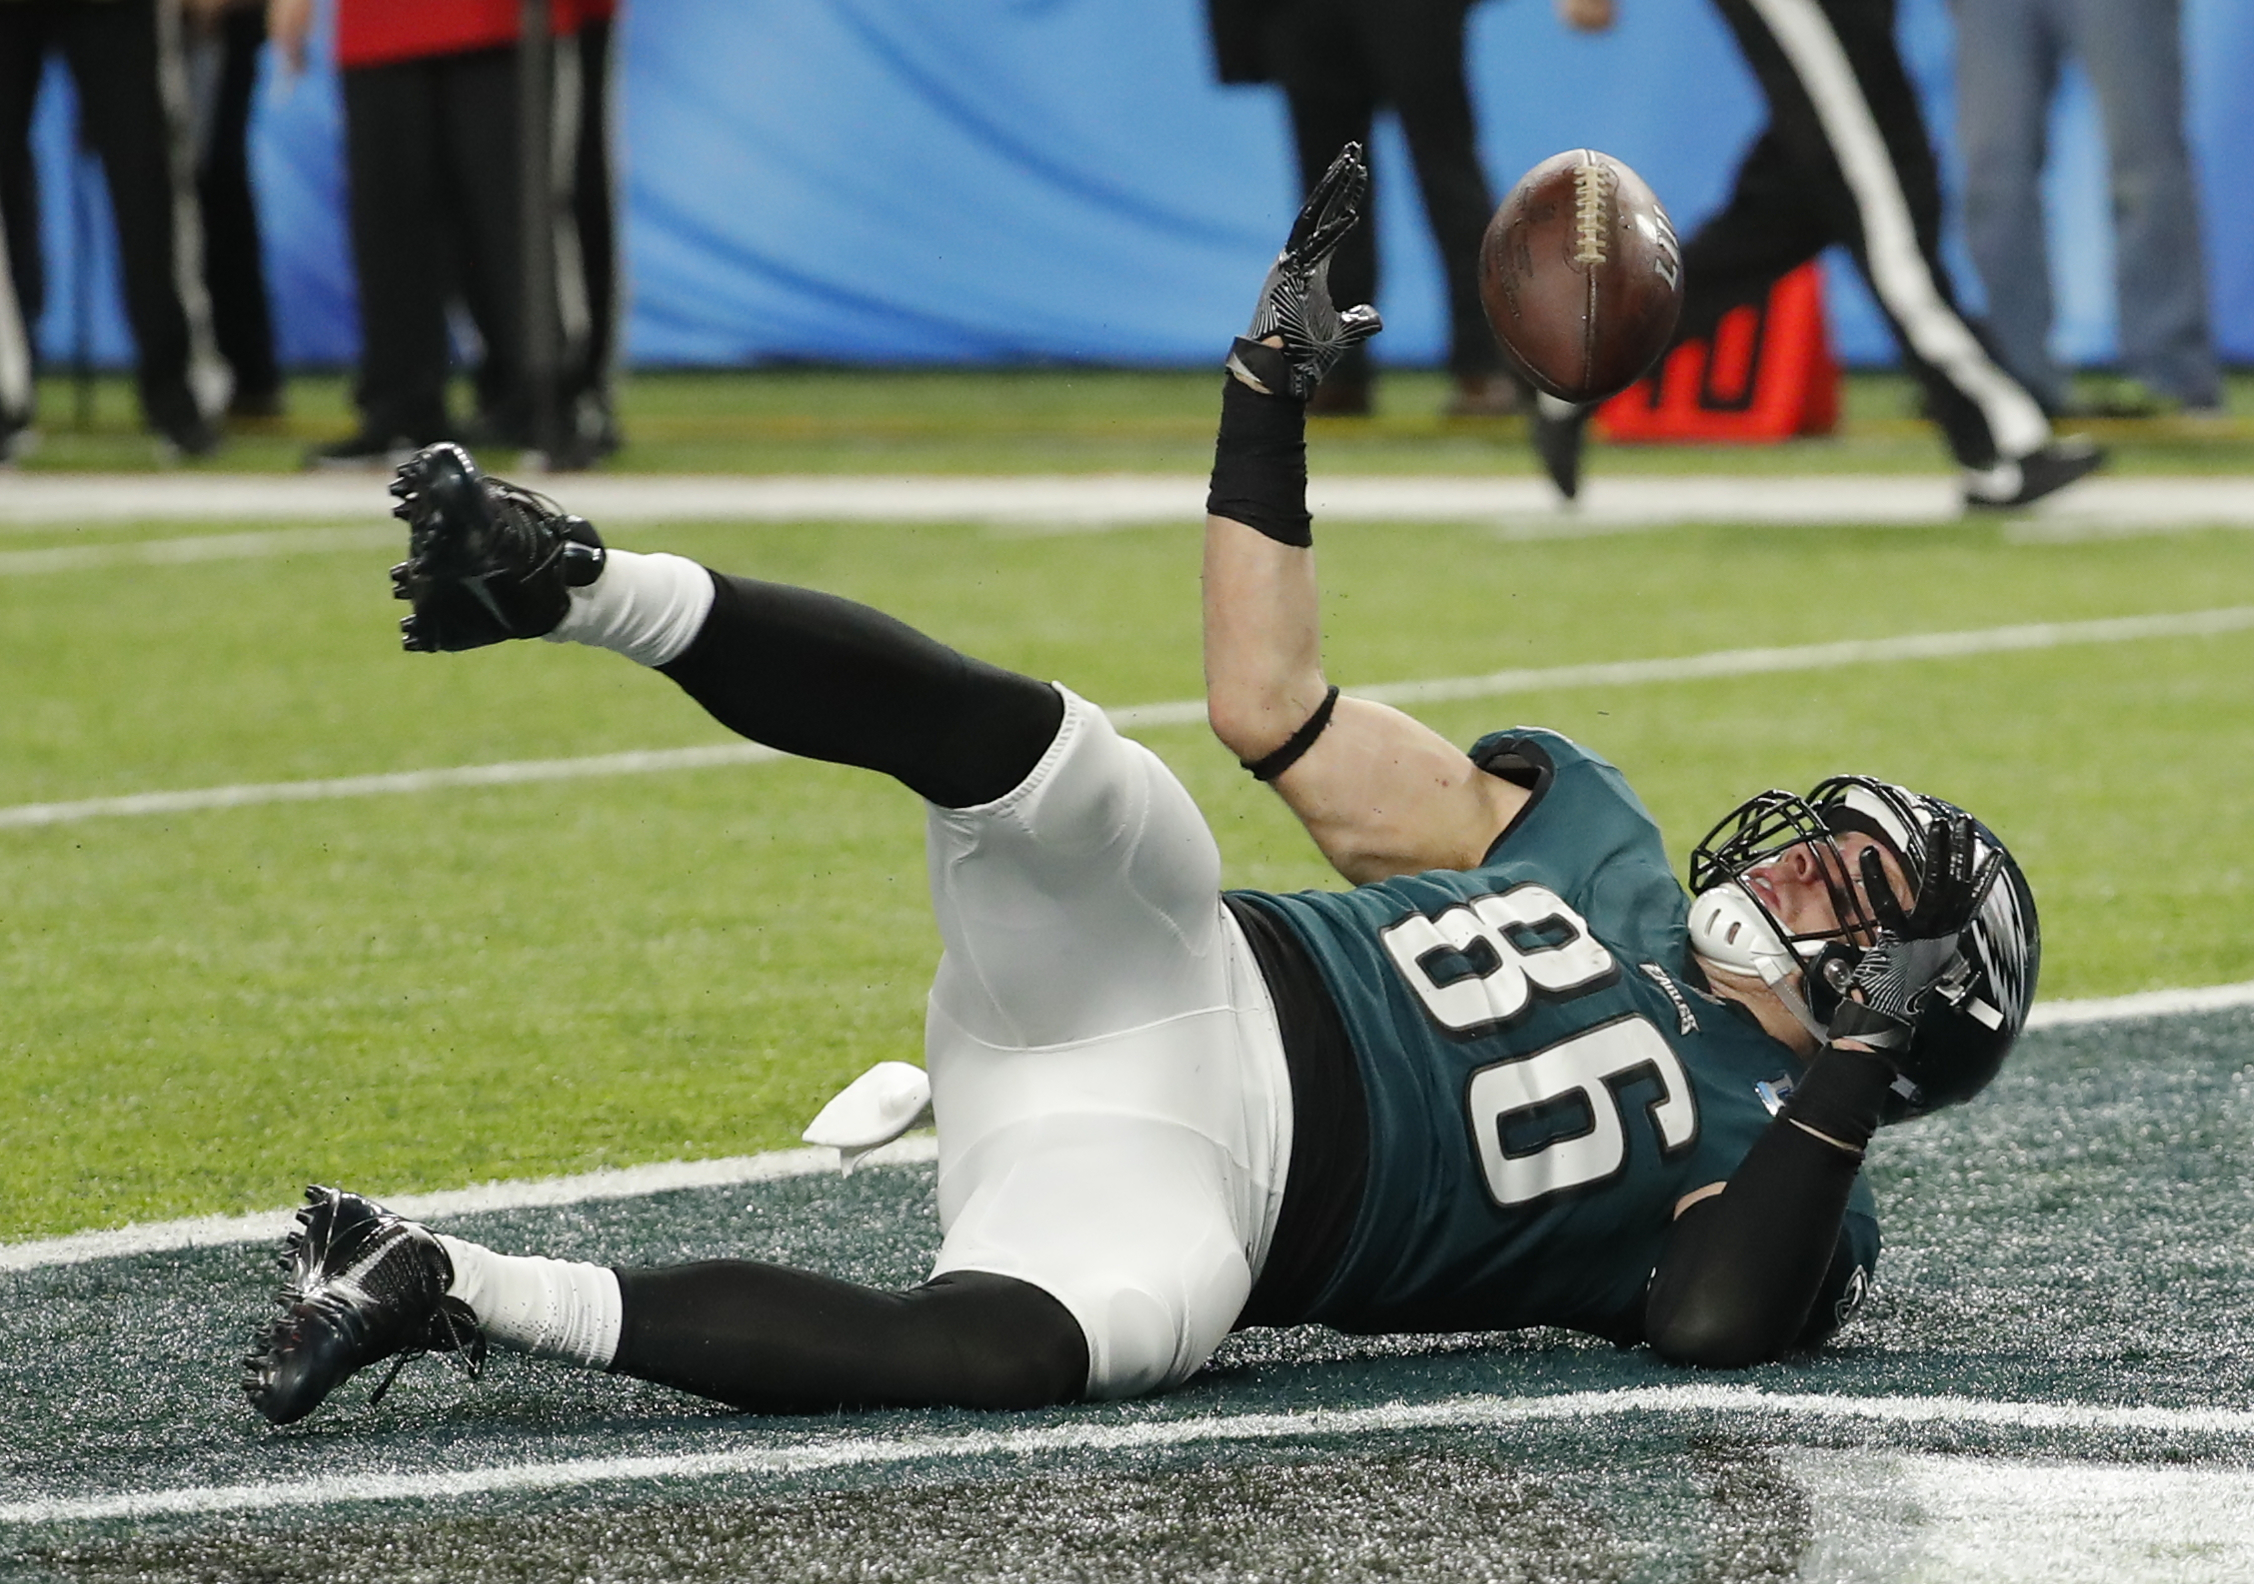 <div class='meta'><div class='origin-logo' data-origin='AP'></div><span class='caption-text' data-credit='AP Photo/Charlie Neibergall'>Philadelphia Eagles tight end Zach Ertz (86) bobbles the ball as he dives into the end zone for a touchdown, during the second half of NFL Super Bowl 52.</span></div>